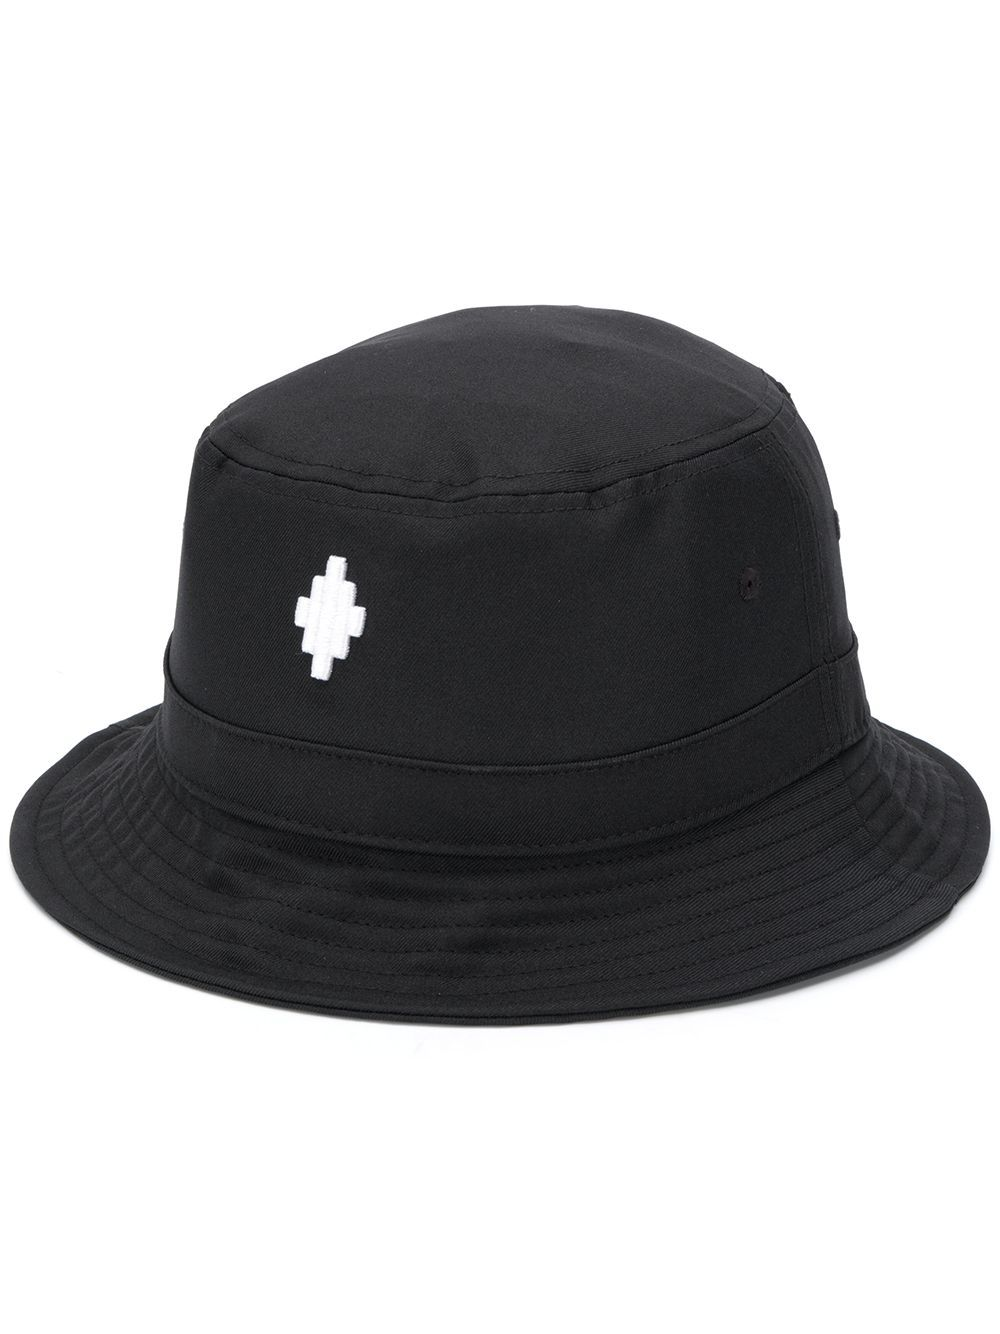 MARCELO BURLON Logo Bucket Hat - Maison De Fashion